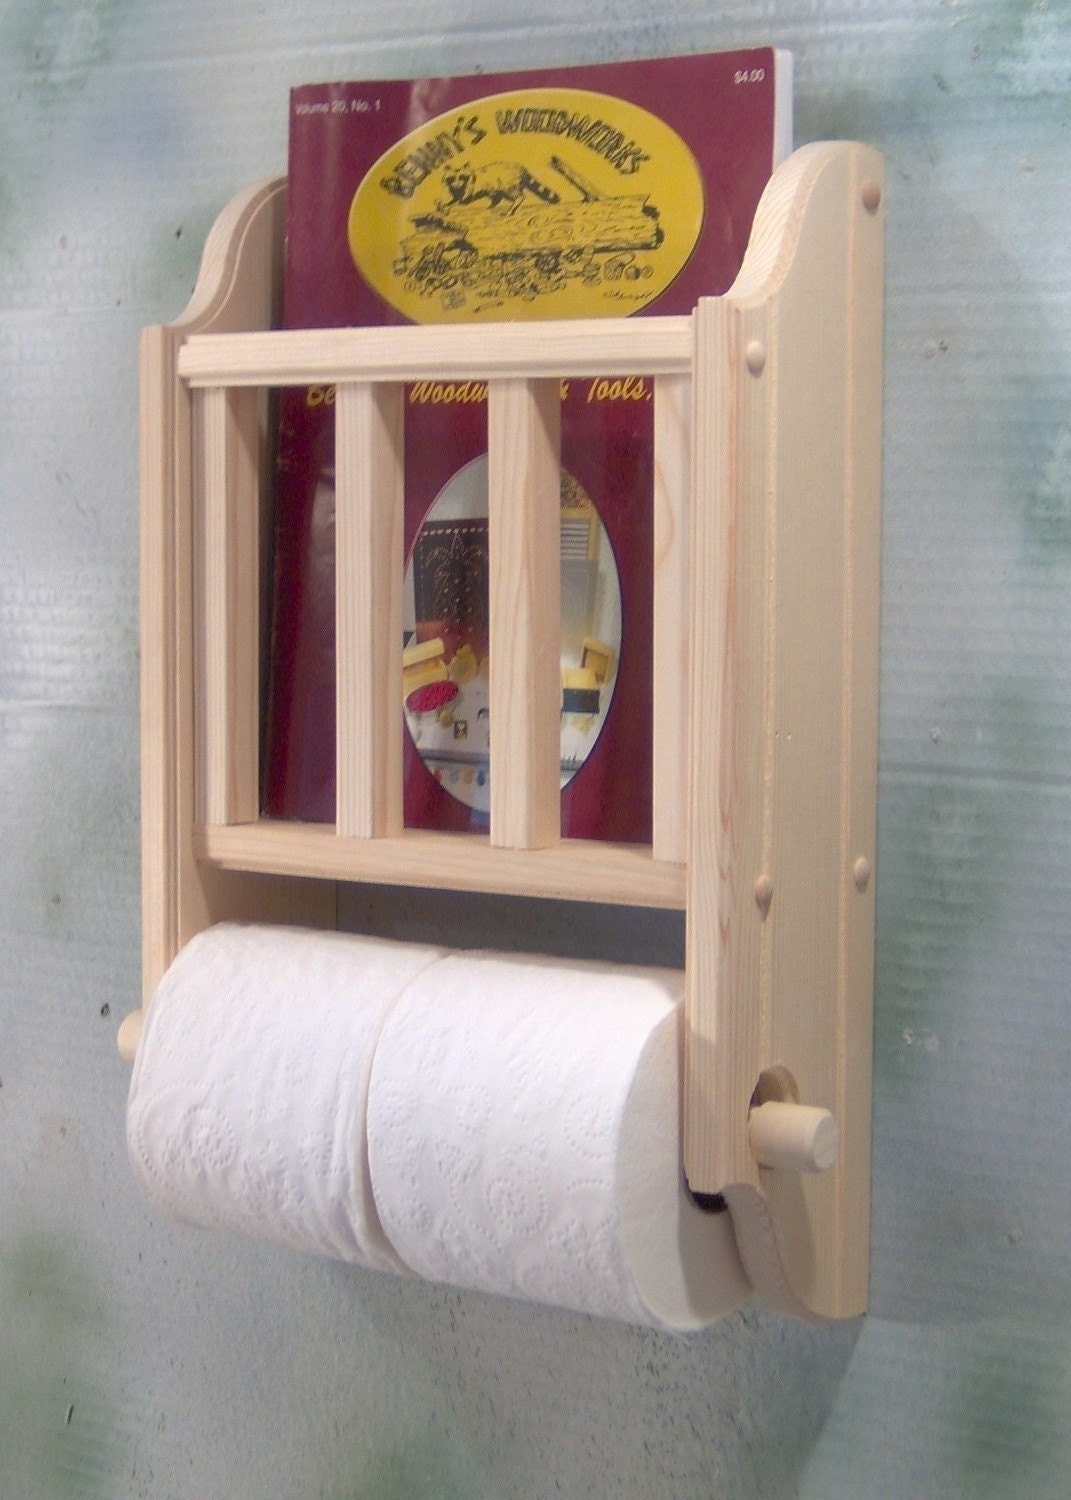 Toilet Paper Magazine Rack